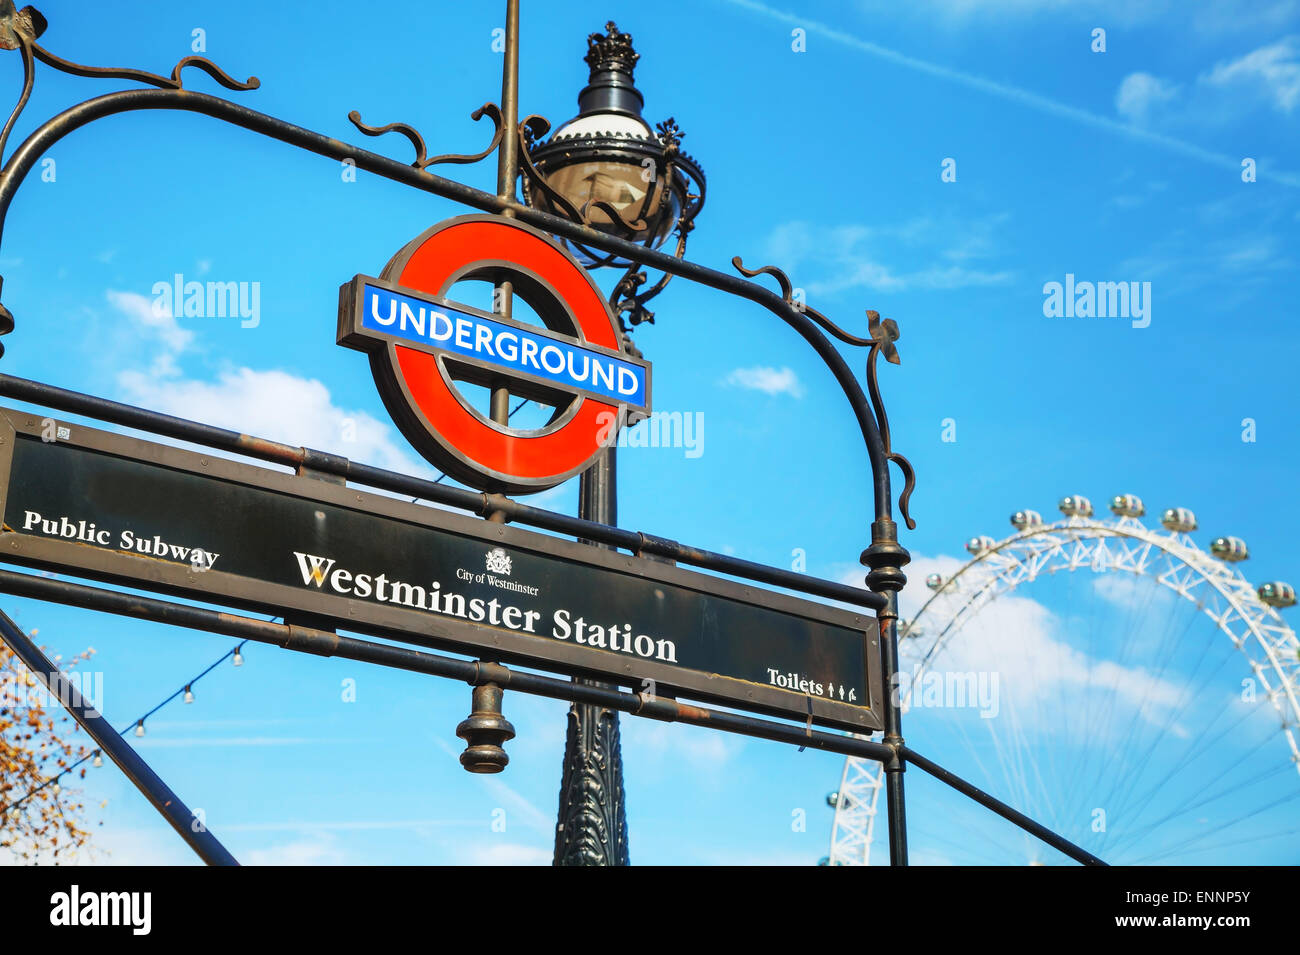 Londres - le 12 avril : London Underground sign à la station Westminster le 12 avril 2015 à Londres, Photo Stock